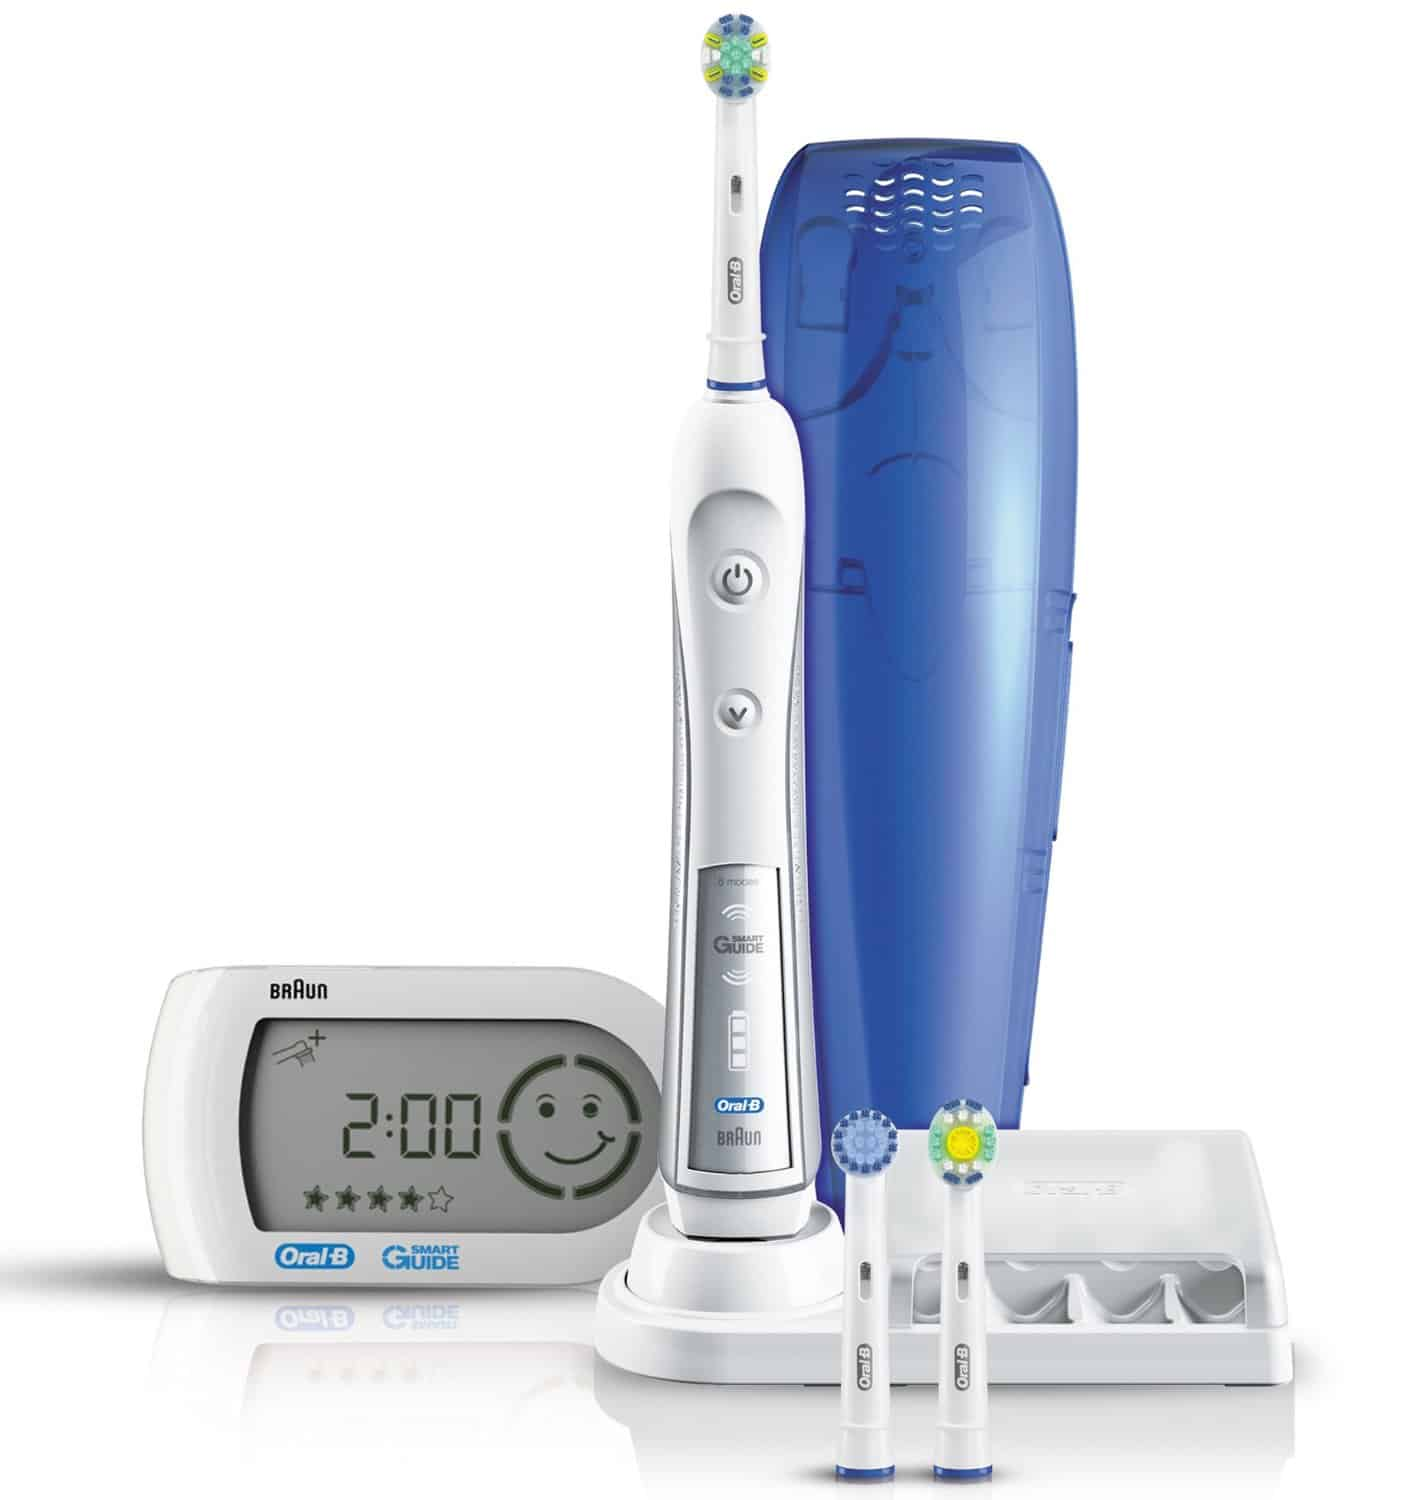 Oral B Triumph 5000 Power Toothbrush Review